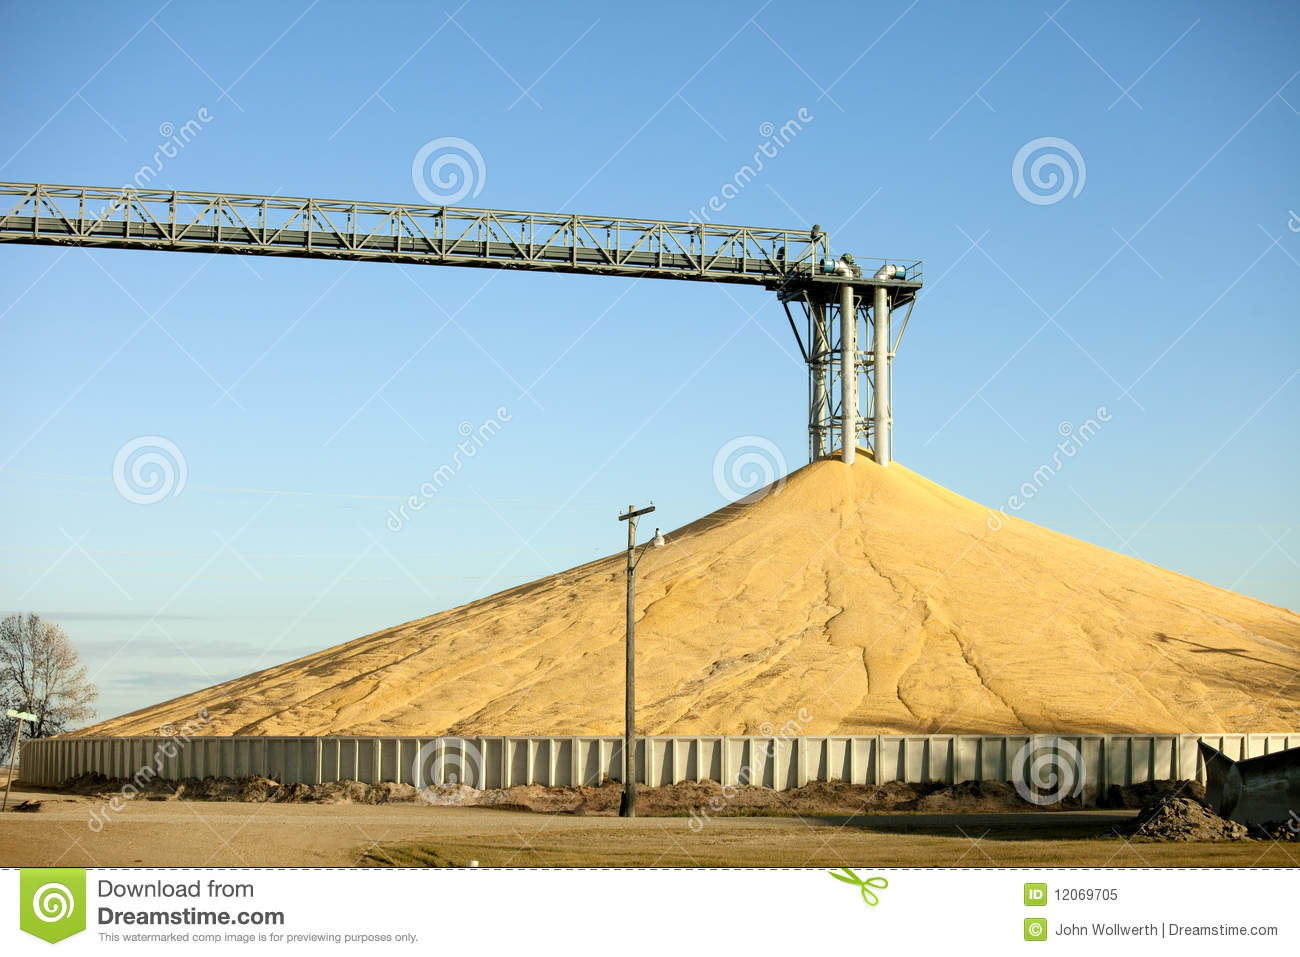 Immense Pile Of Grain Royalty Free Stock Photo - Image: 12069705